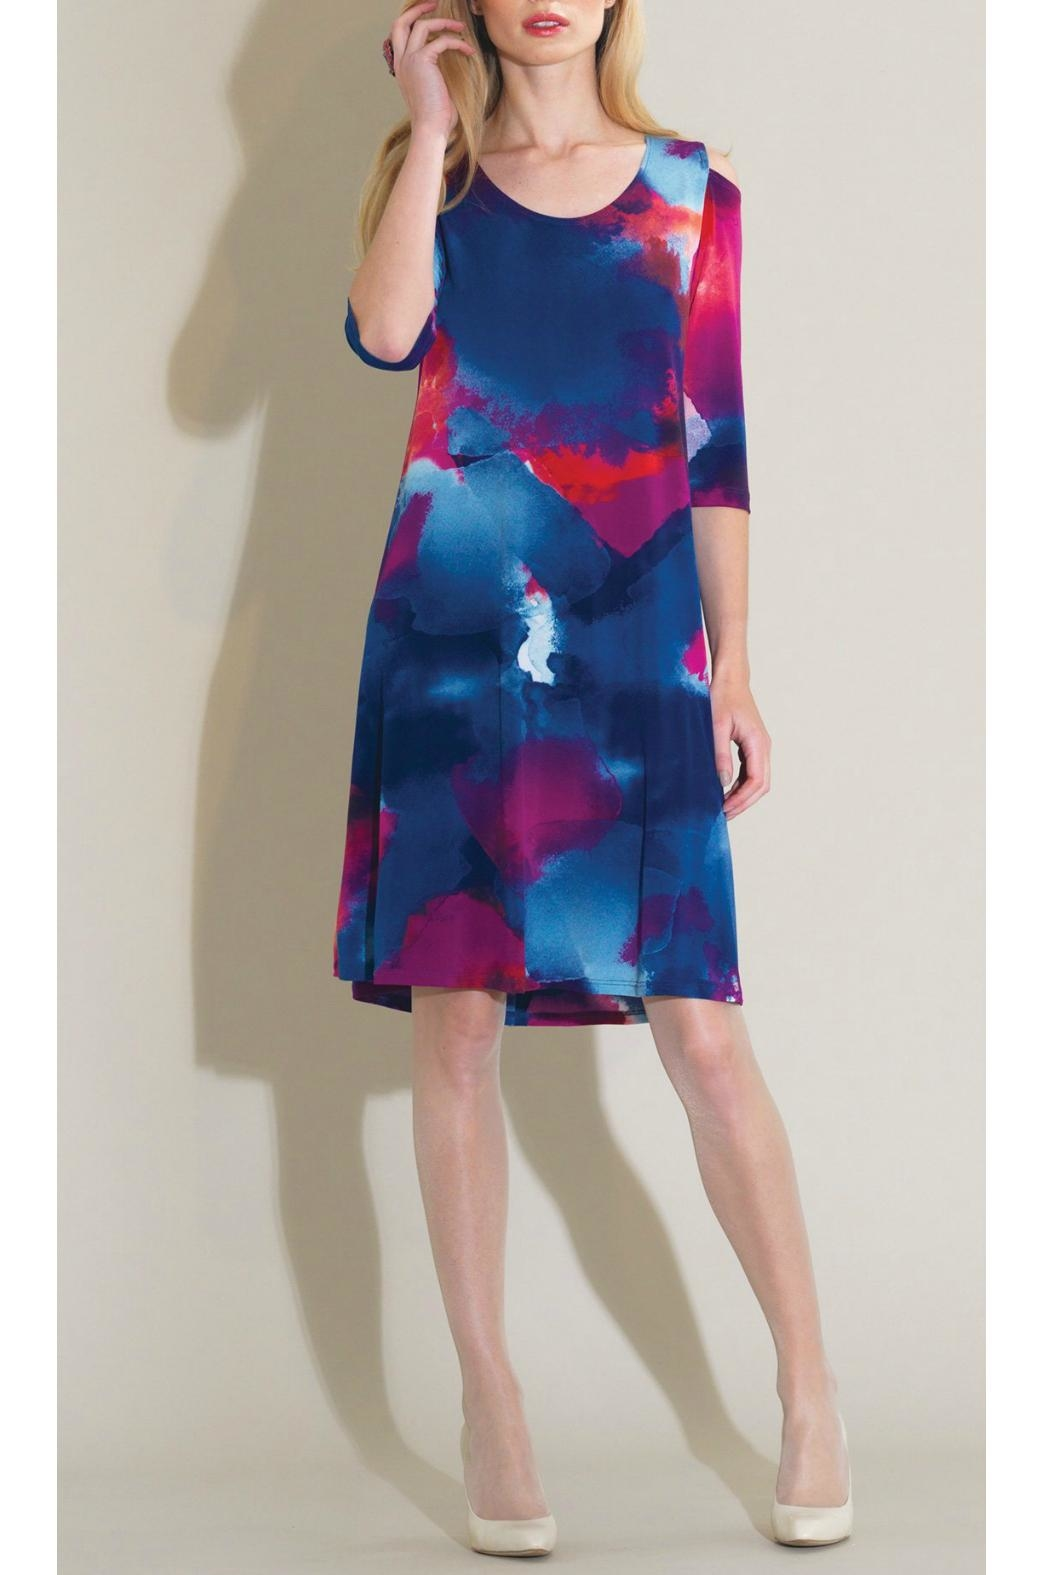 Clara Sunwoo Watercolor Swing Dress - Main Image